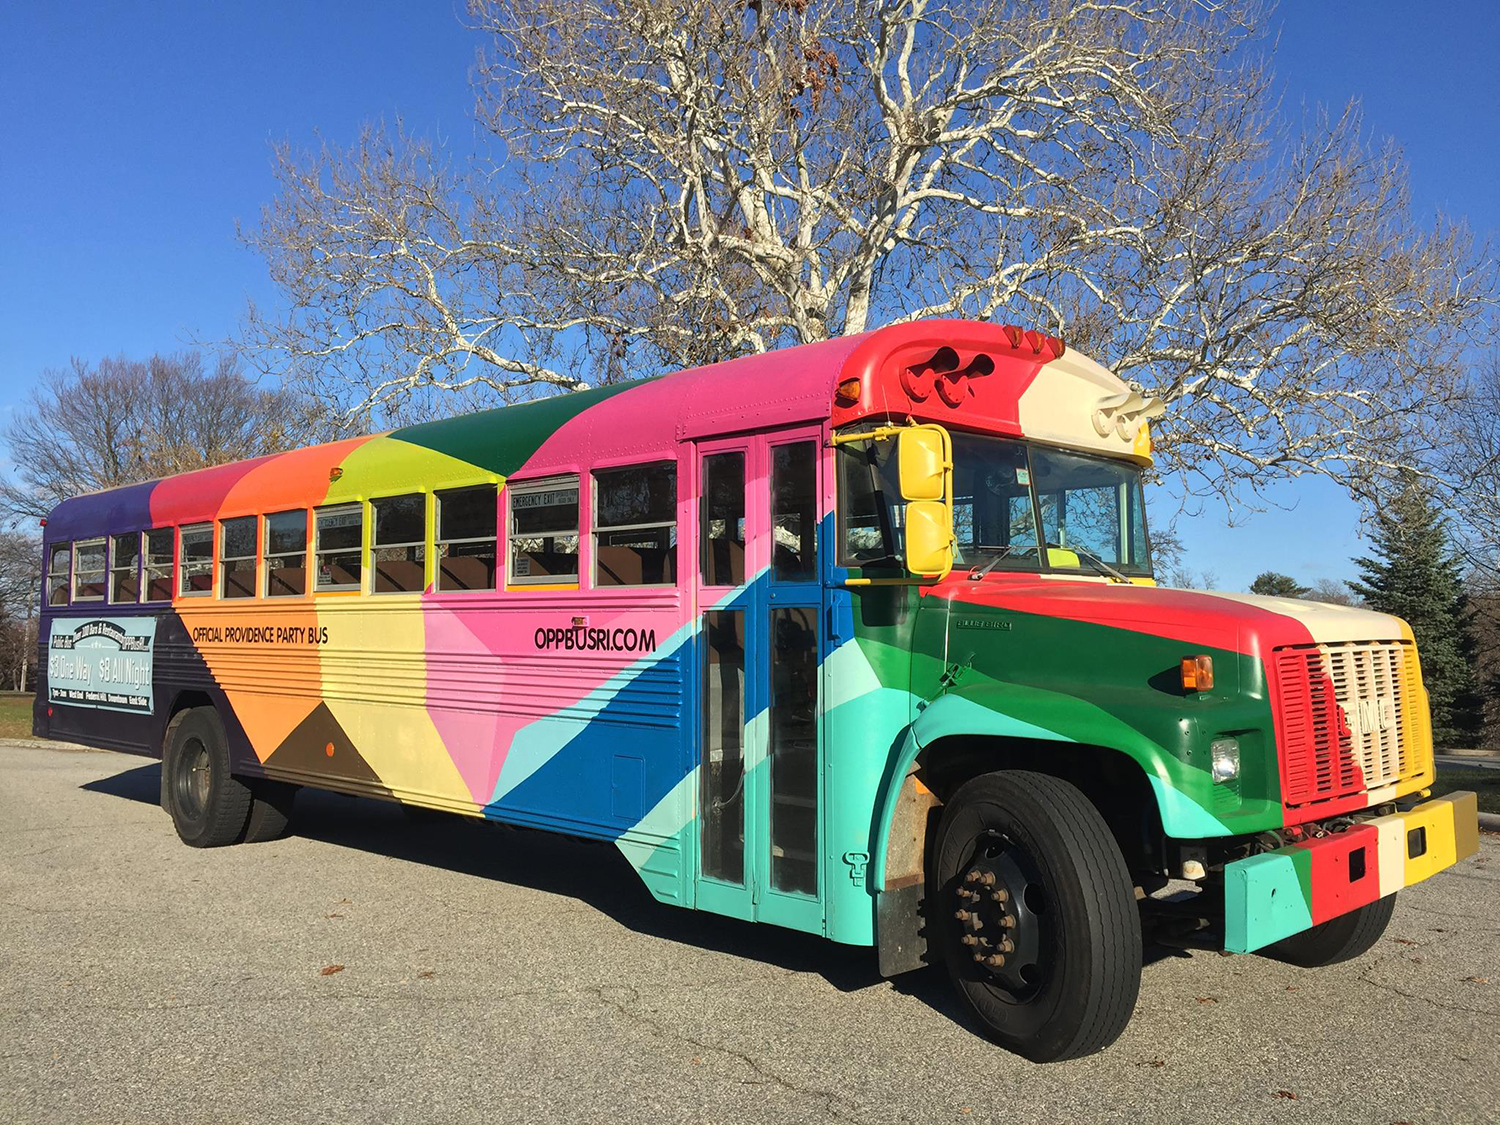 Razzle Dazzle Bus ,   2015, Providence RI,  spray paint on school bus, curated by  The Avenue Concept